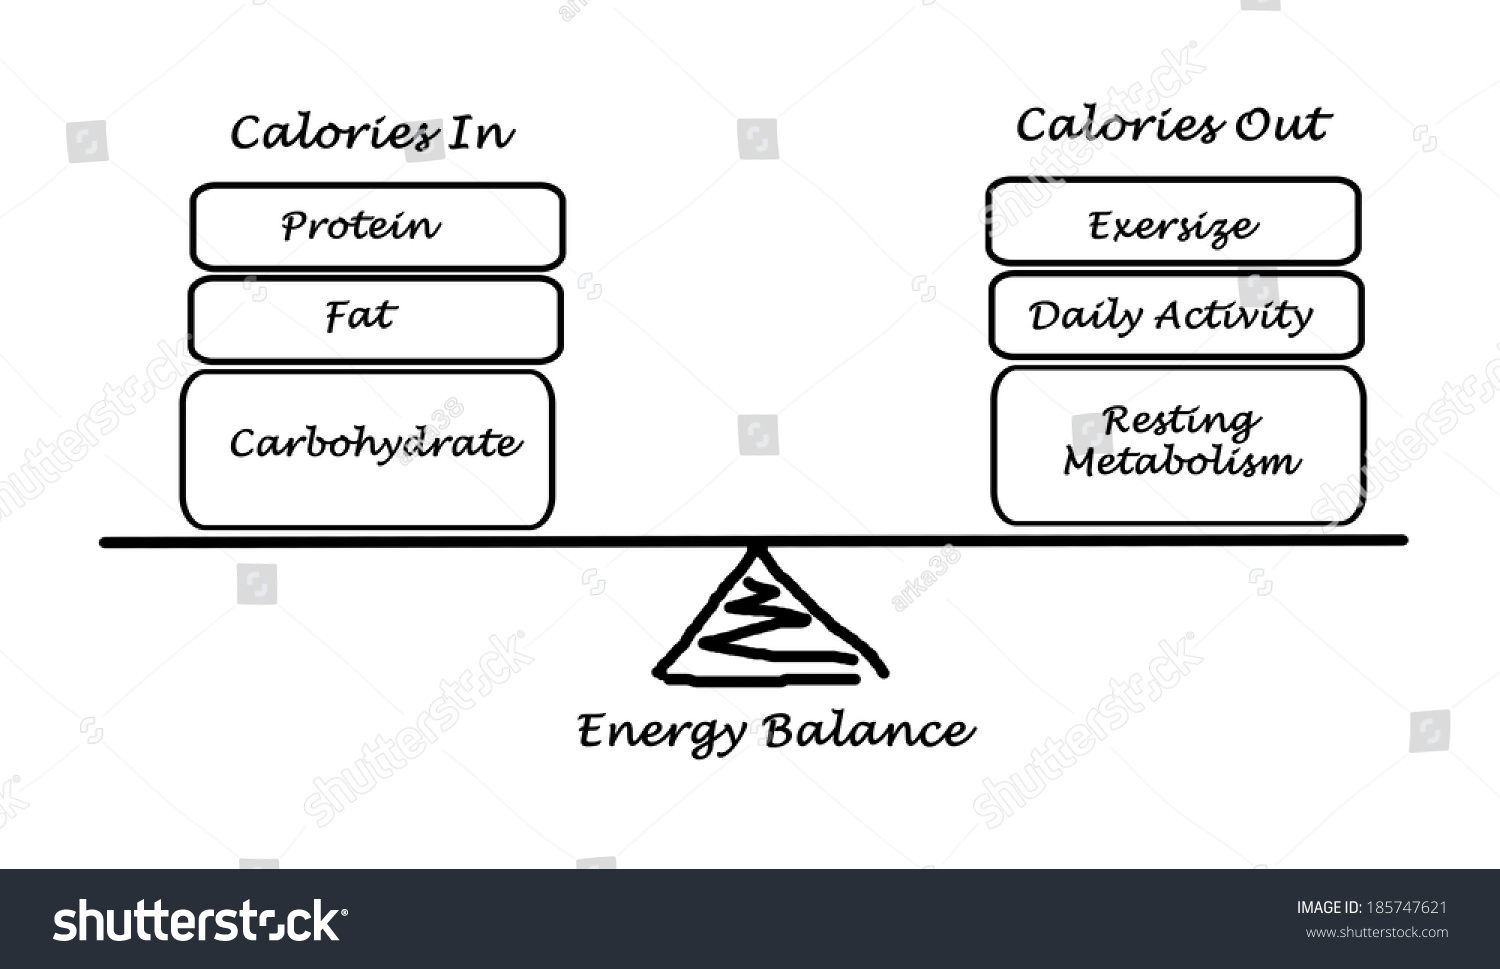 energy expenditure intake and balance Journal of nutrition and metabolism is a peer-reviewed fat gain is always considered to be a result of long-term positive energy balance, whereby daily energy intake exceeds expenditure gender and energy balance.